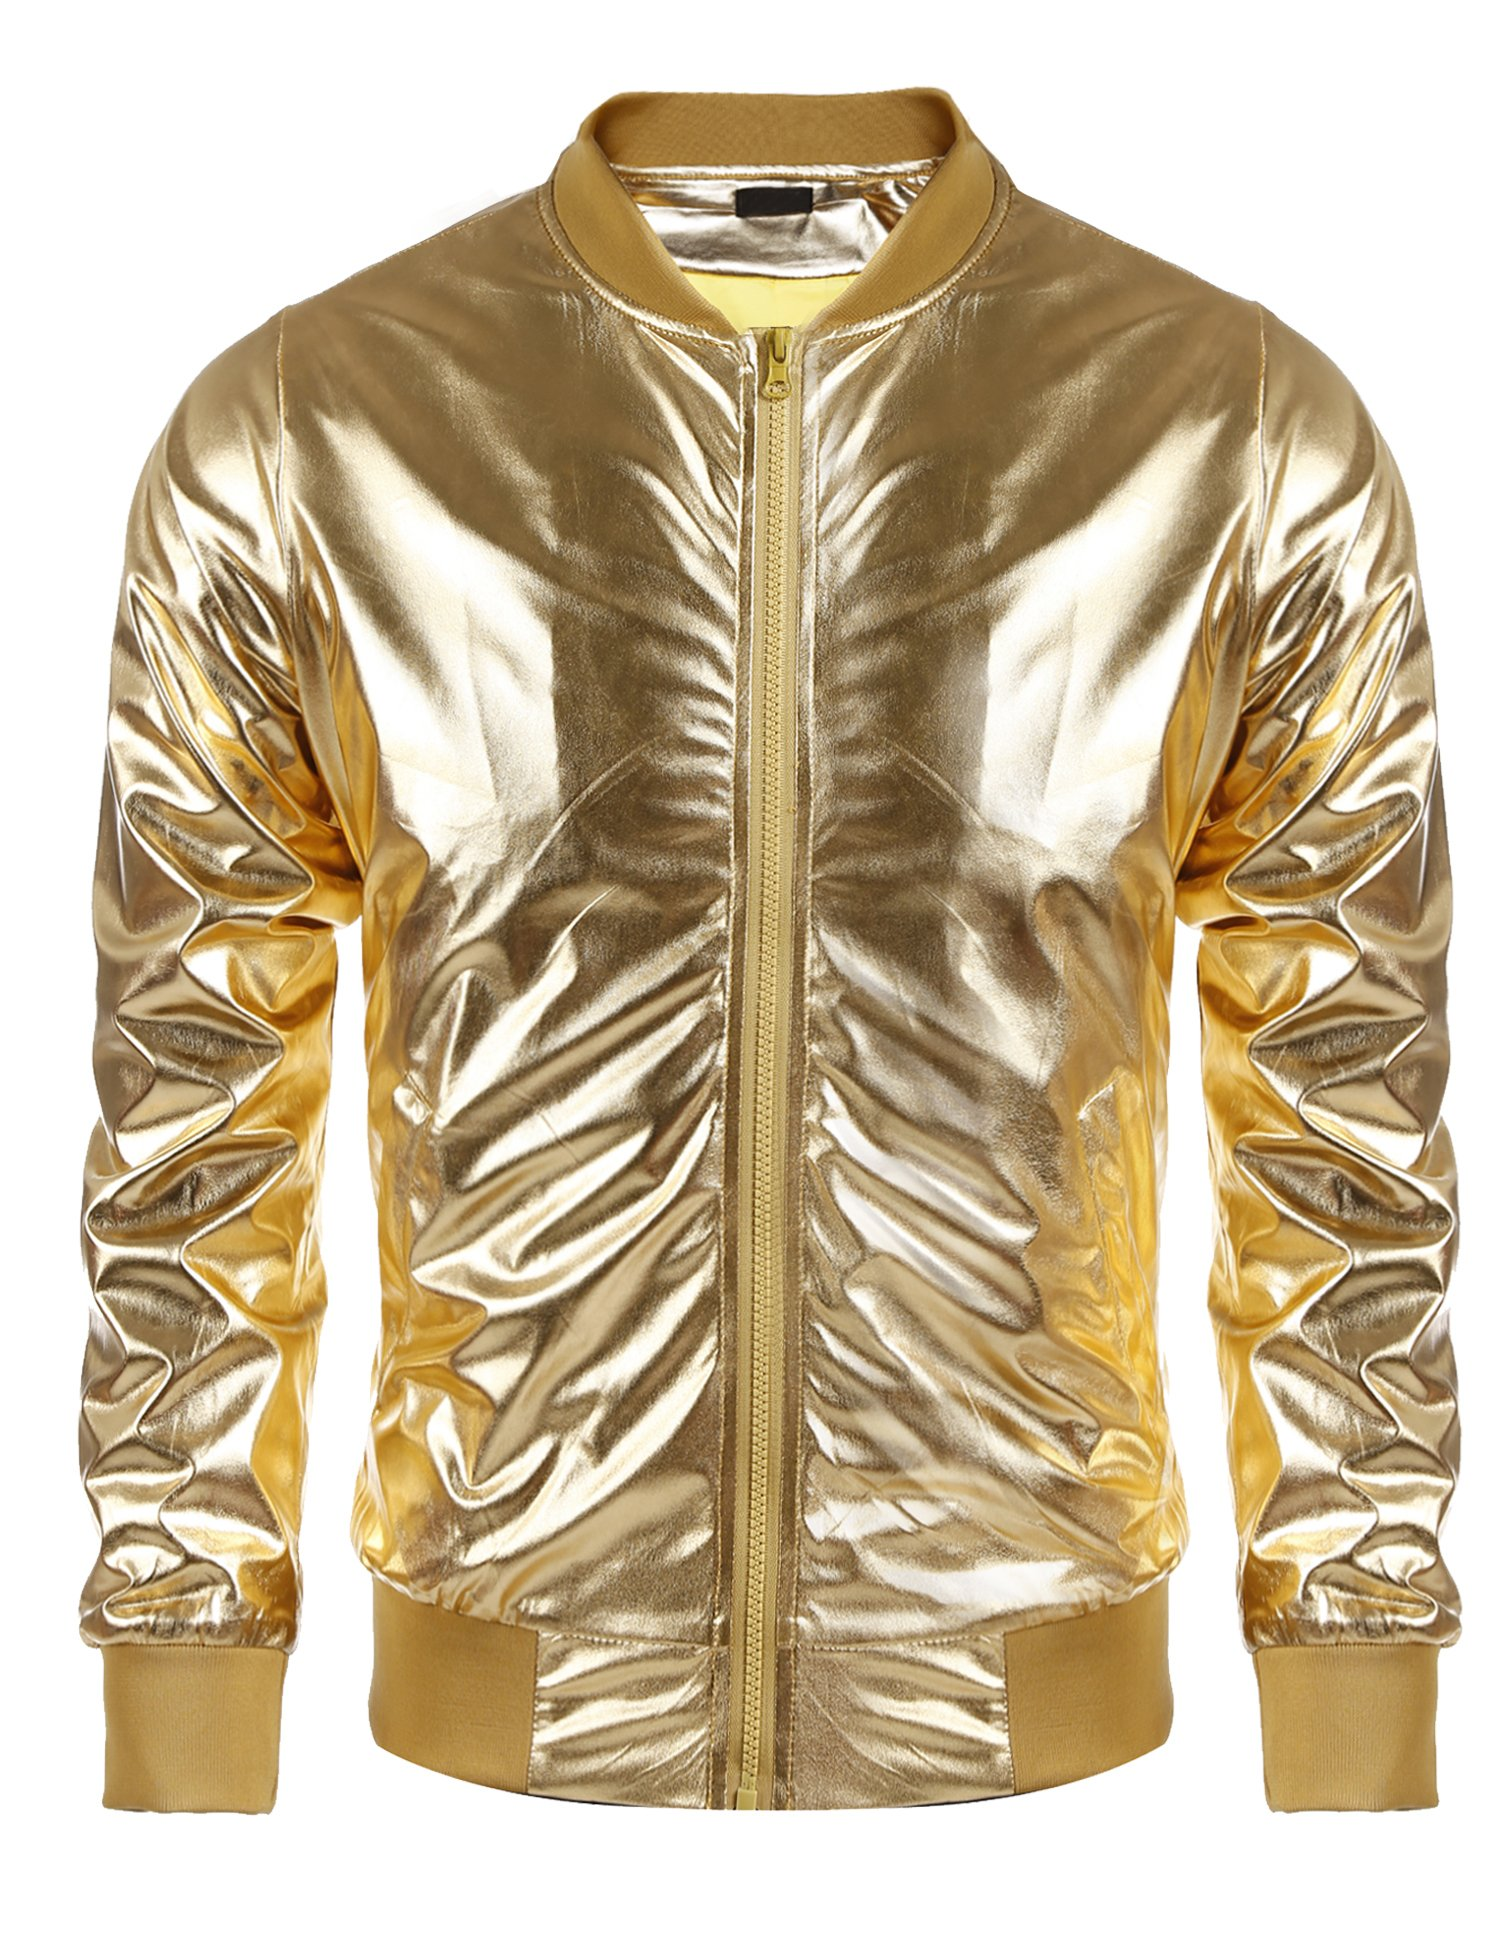 Jinidu Men's Metallic Jacket Nightclub Style Baseball Varsity Bomber Flight Coat